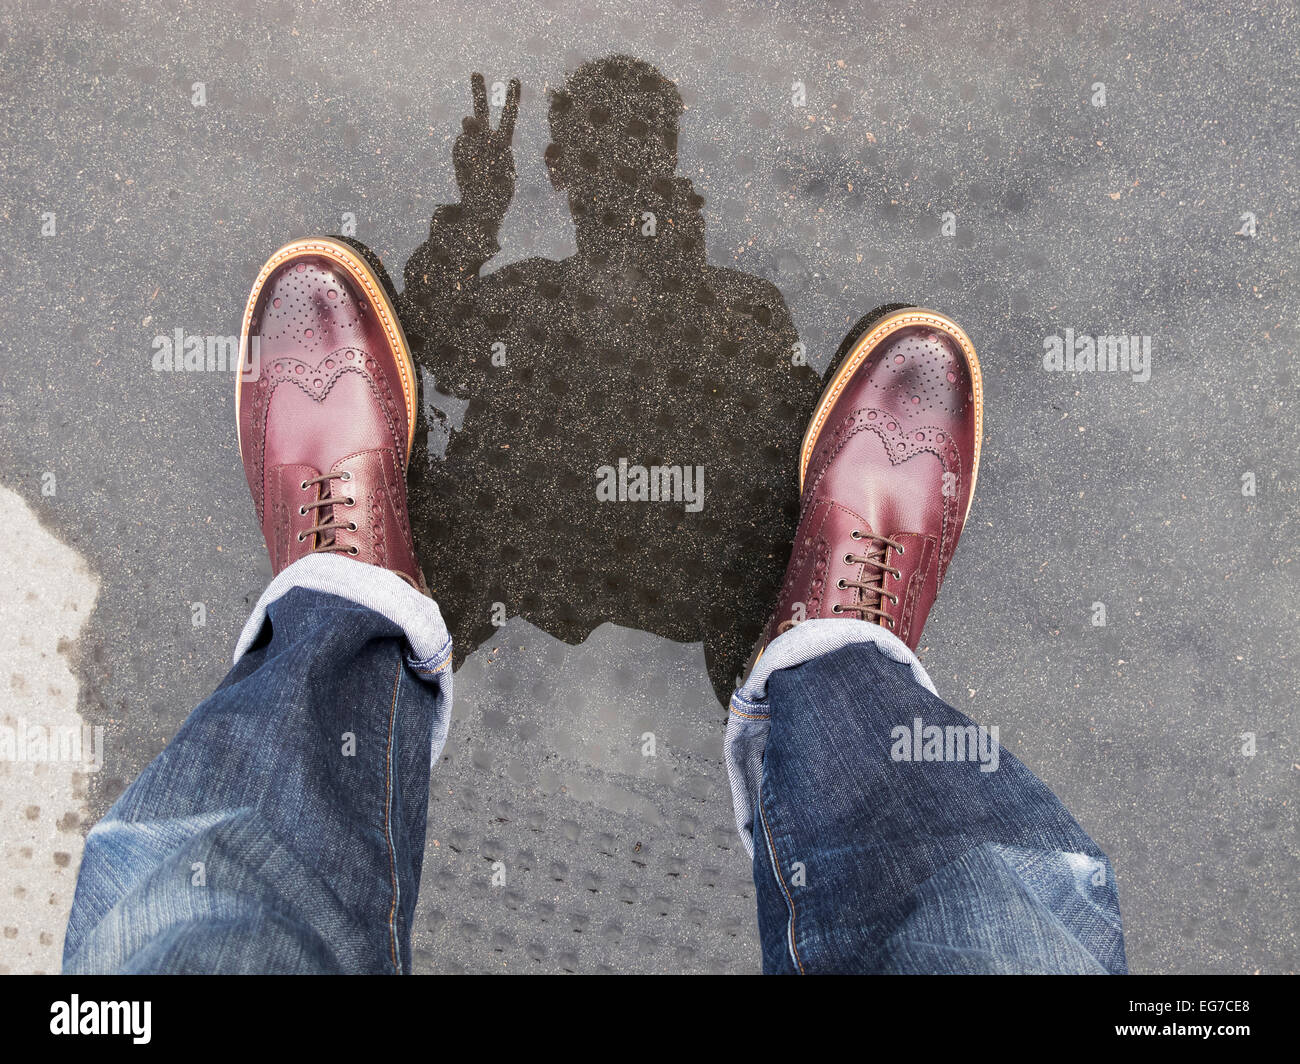 a selfie reflection photograph in a puddle making a two finger peace sign - Stock Image